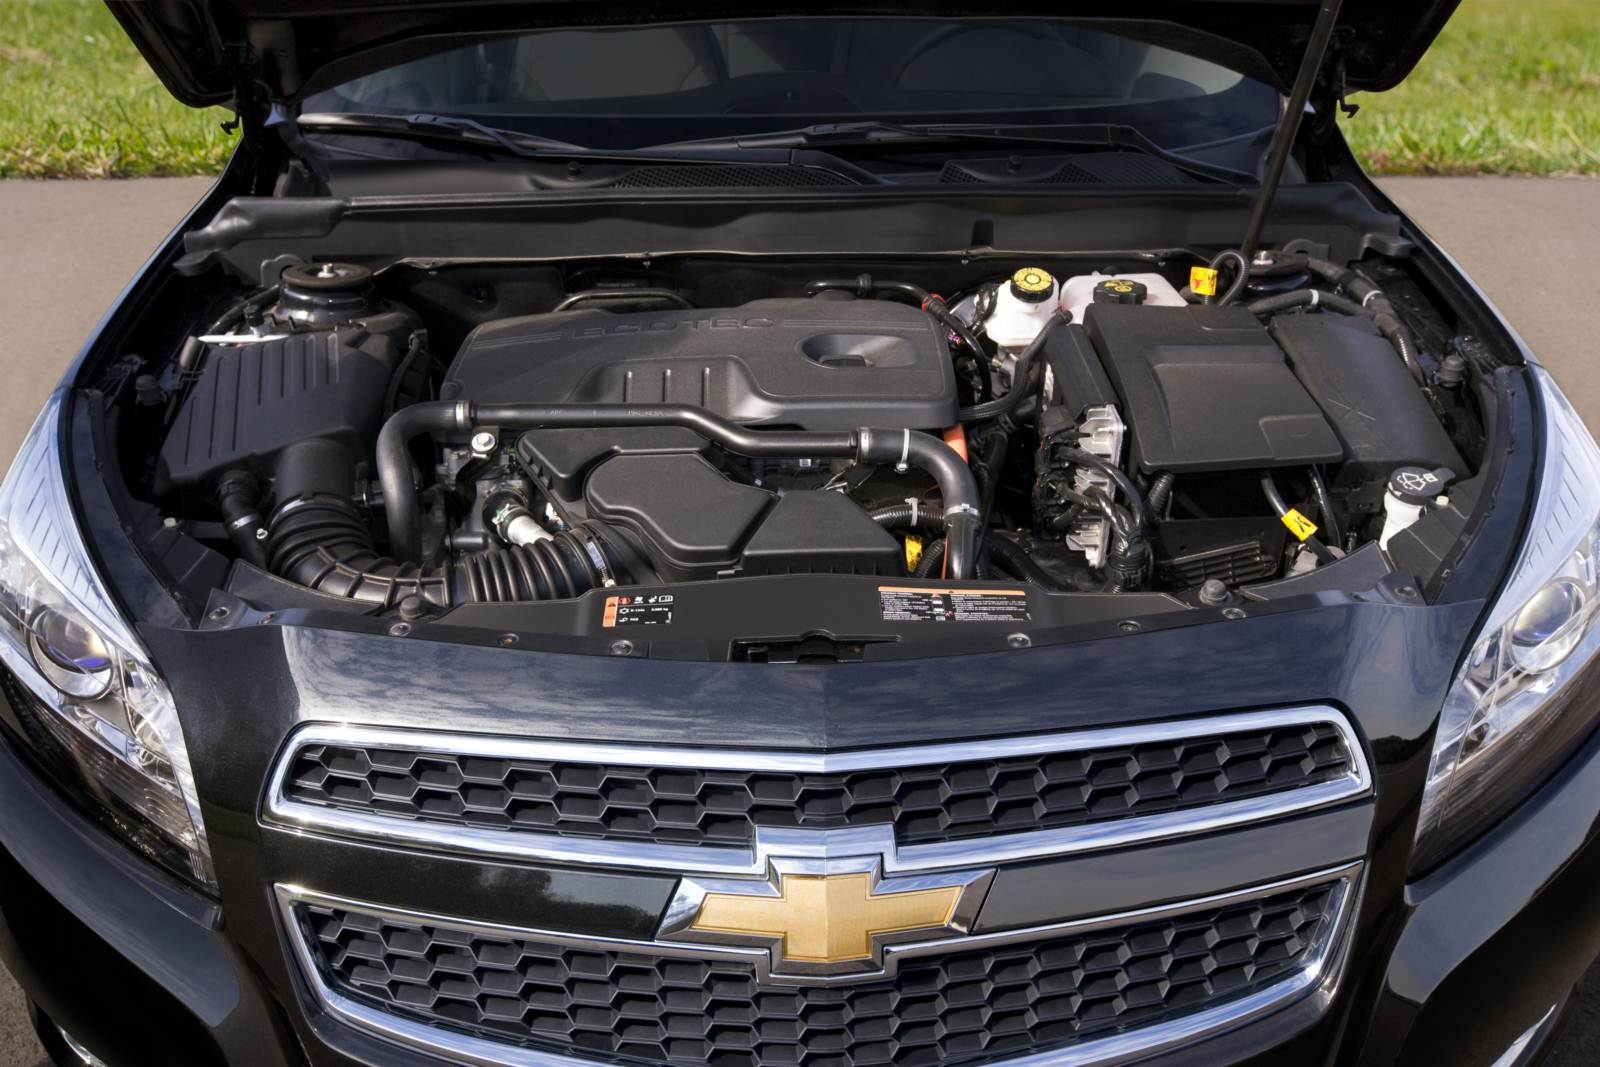 Chrysler Sebring 2 4 2014 Specs And Images as well Watch additionally 3wtrg Cam Sensor Located 08 Chevy Silverado V6 moreover Knock Sensor Replacement Cost further Starter Replacement Cost. on chevy malibu camshaft position sensor location